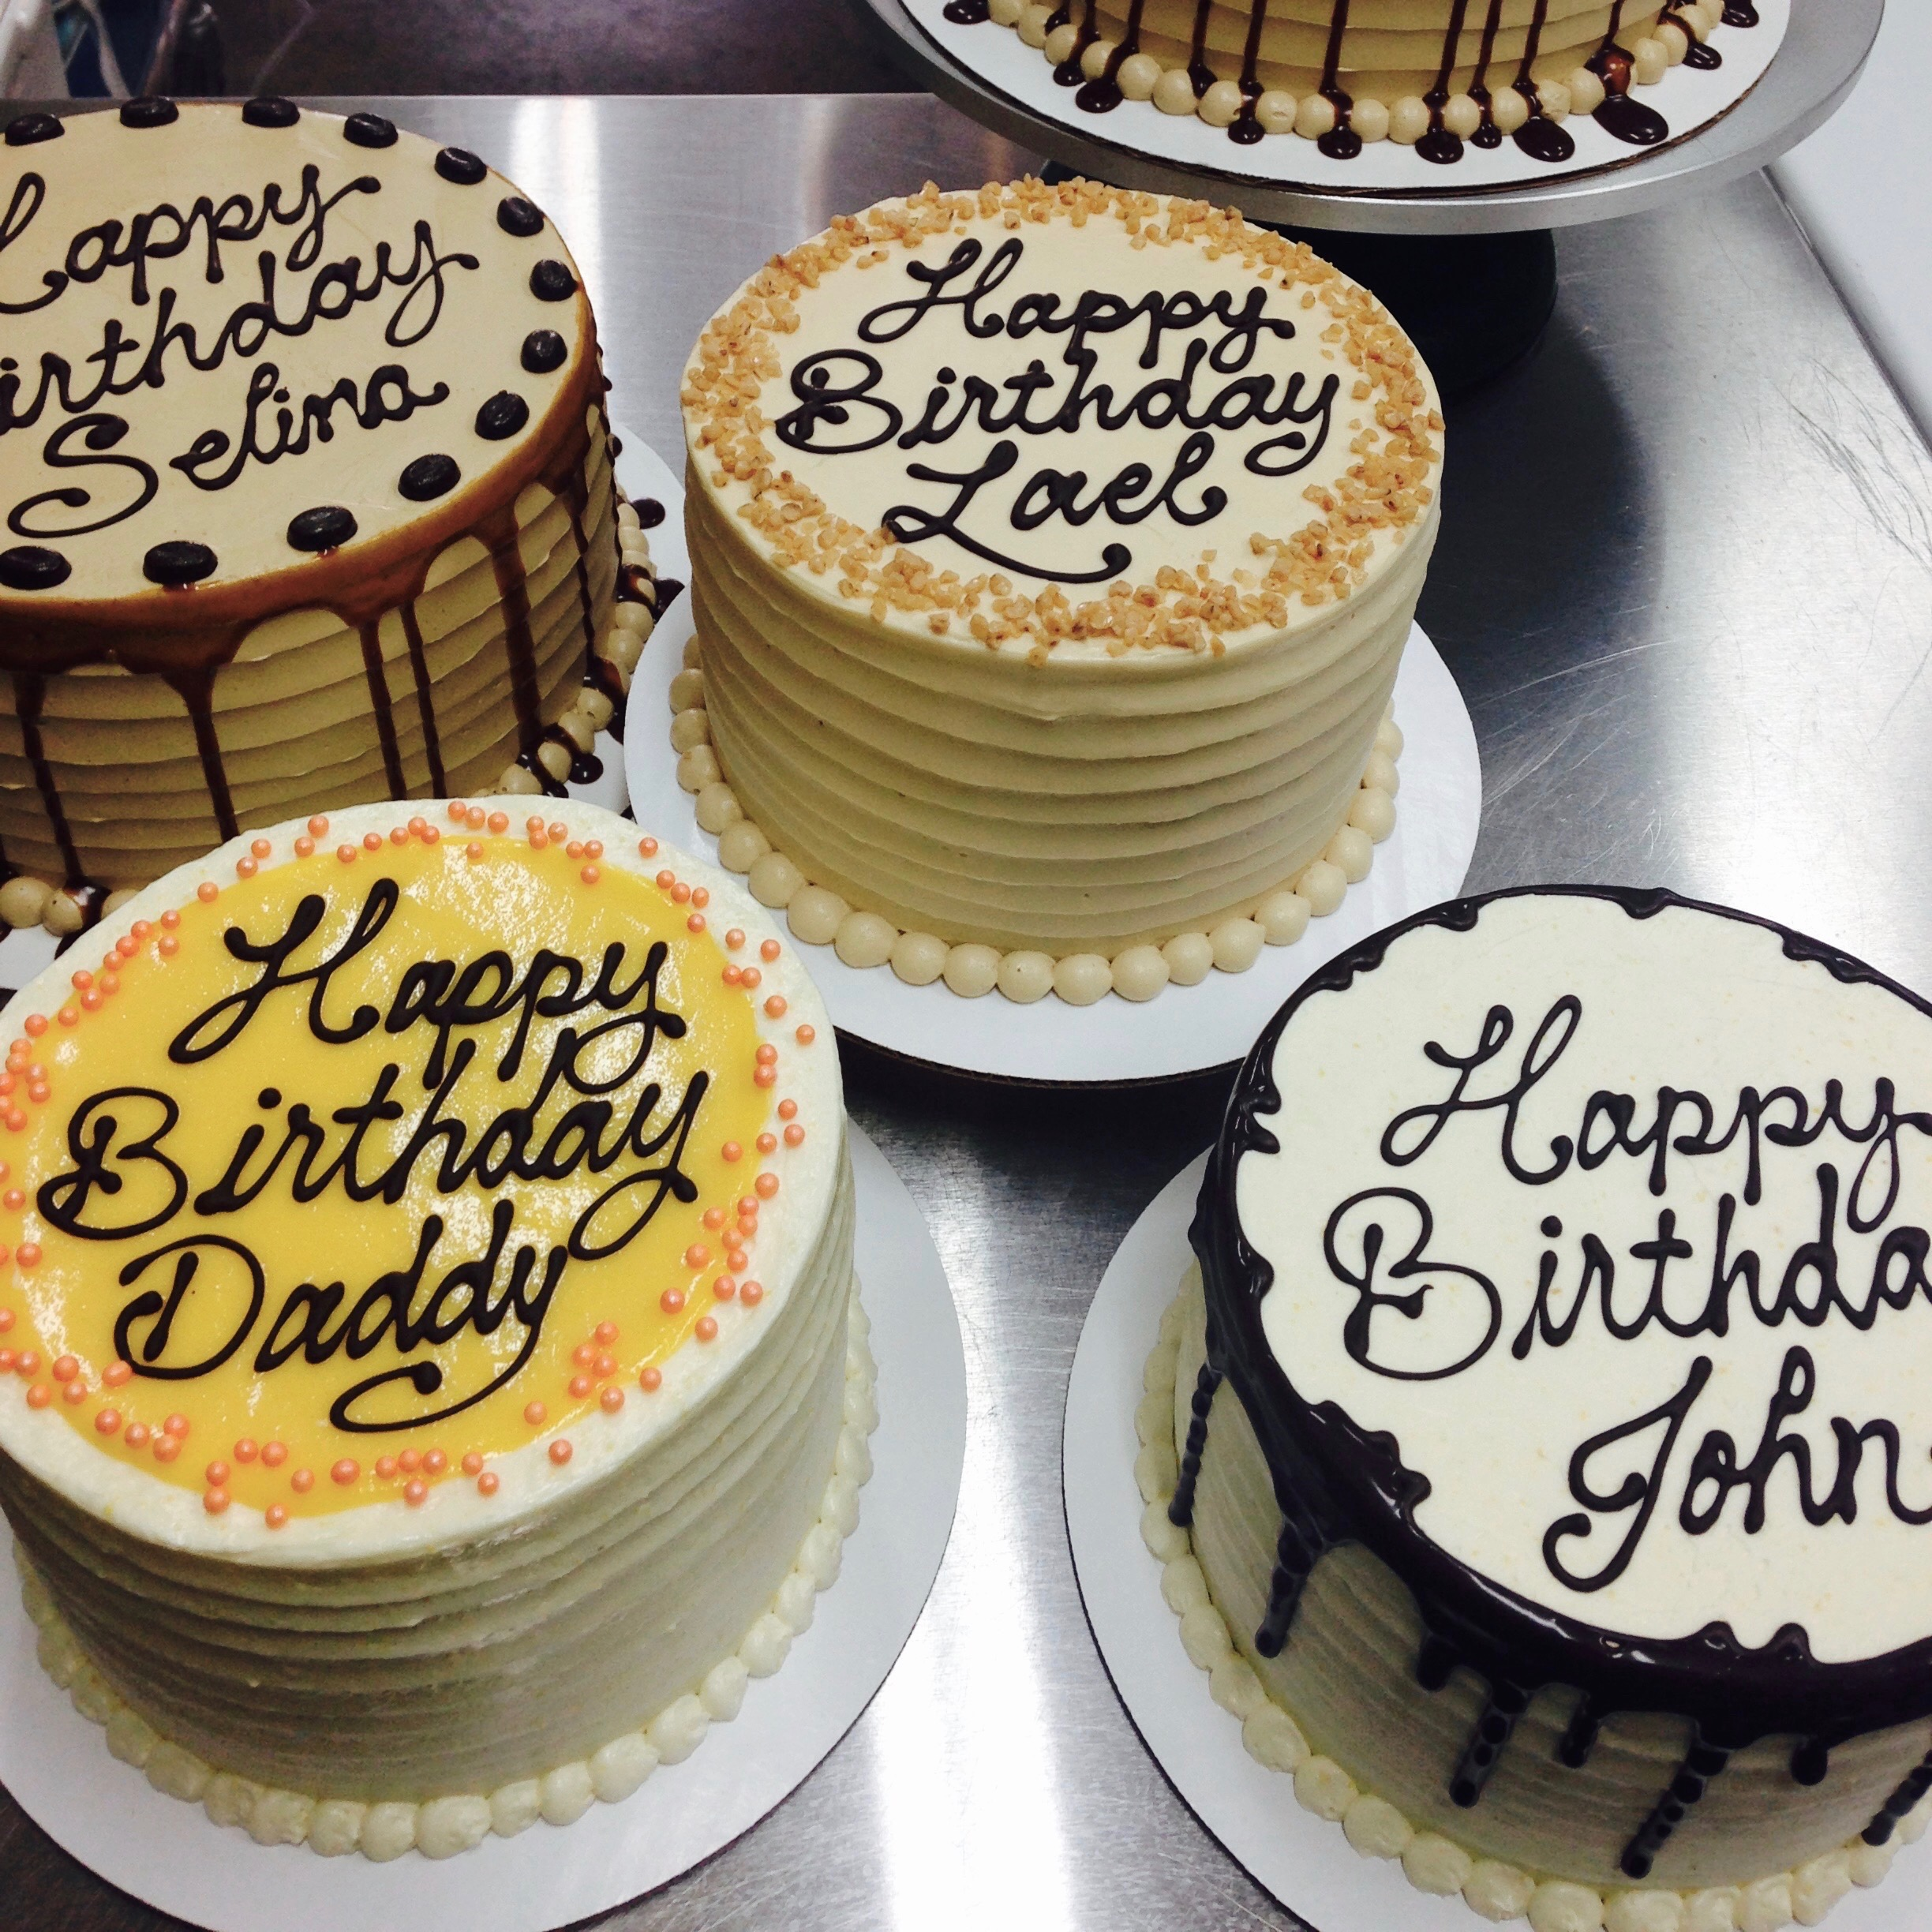 CAKE WRITING AVAILABLE ON PRE-ORDERED CAKES...